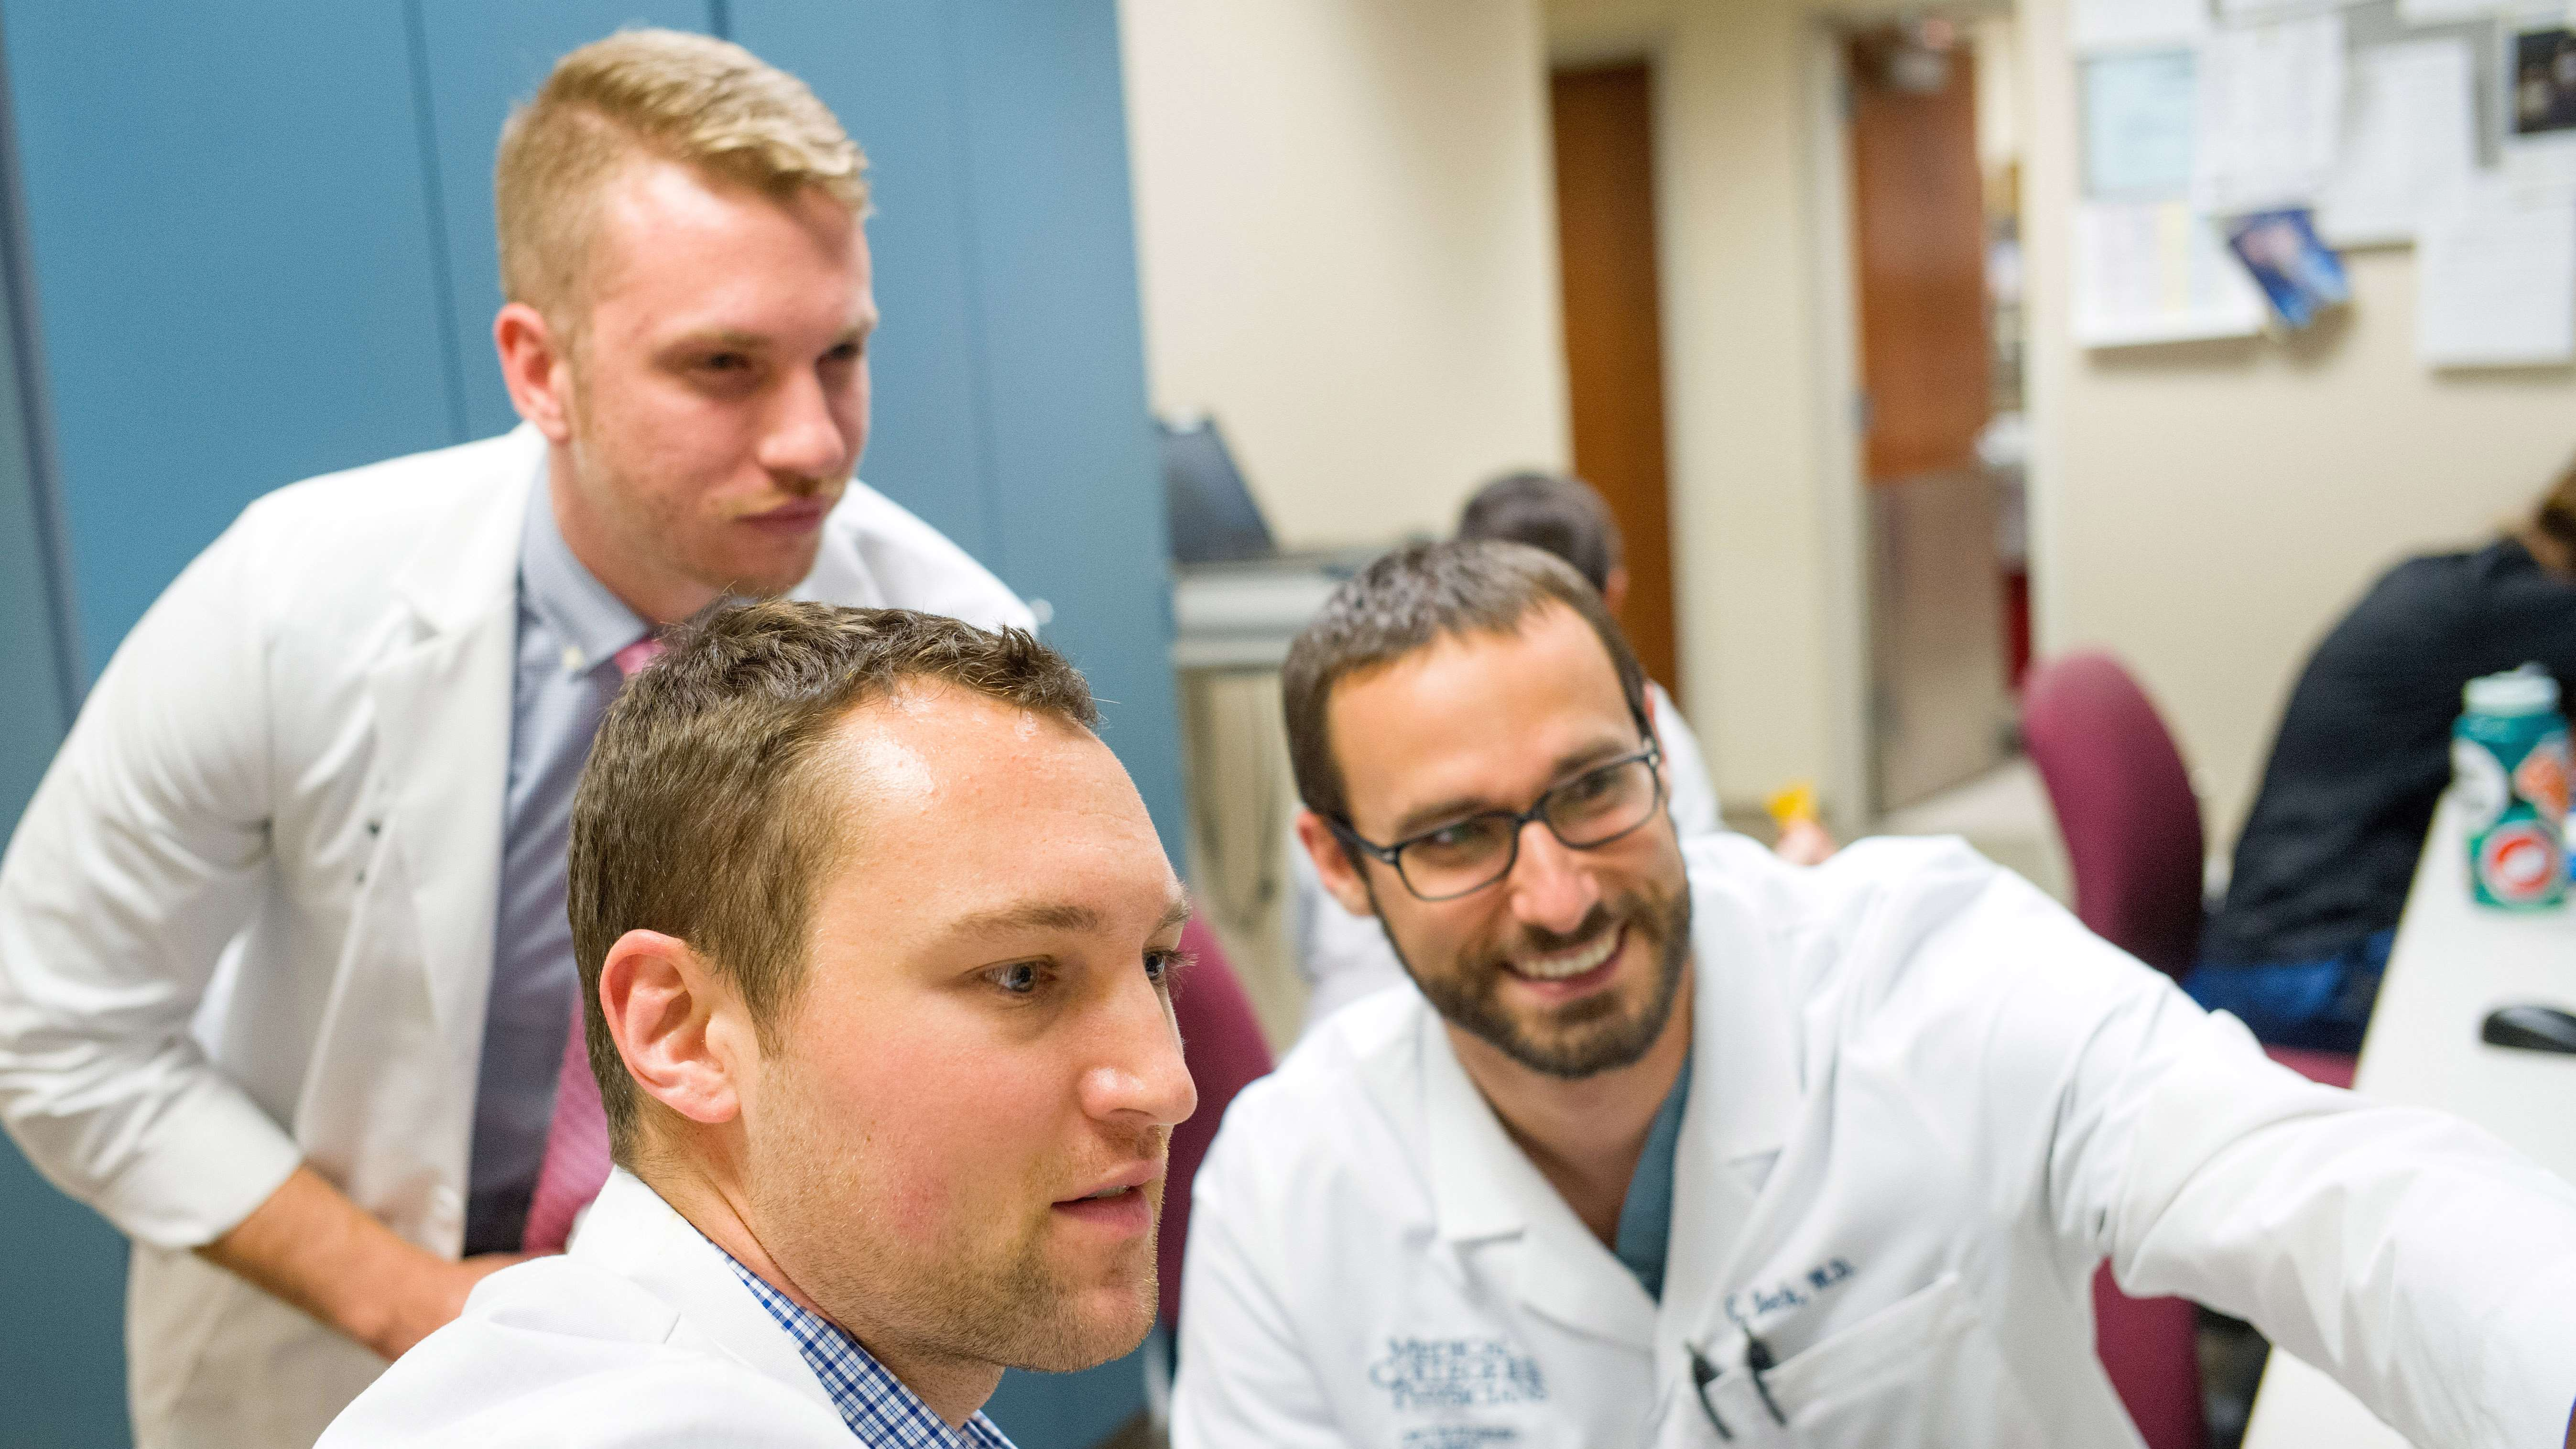 Apply to Orthopaedic Surgery Residency